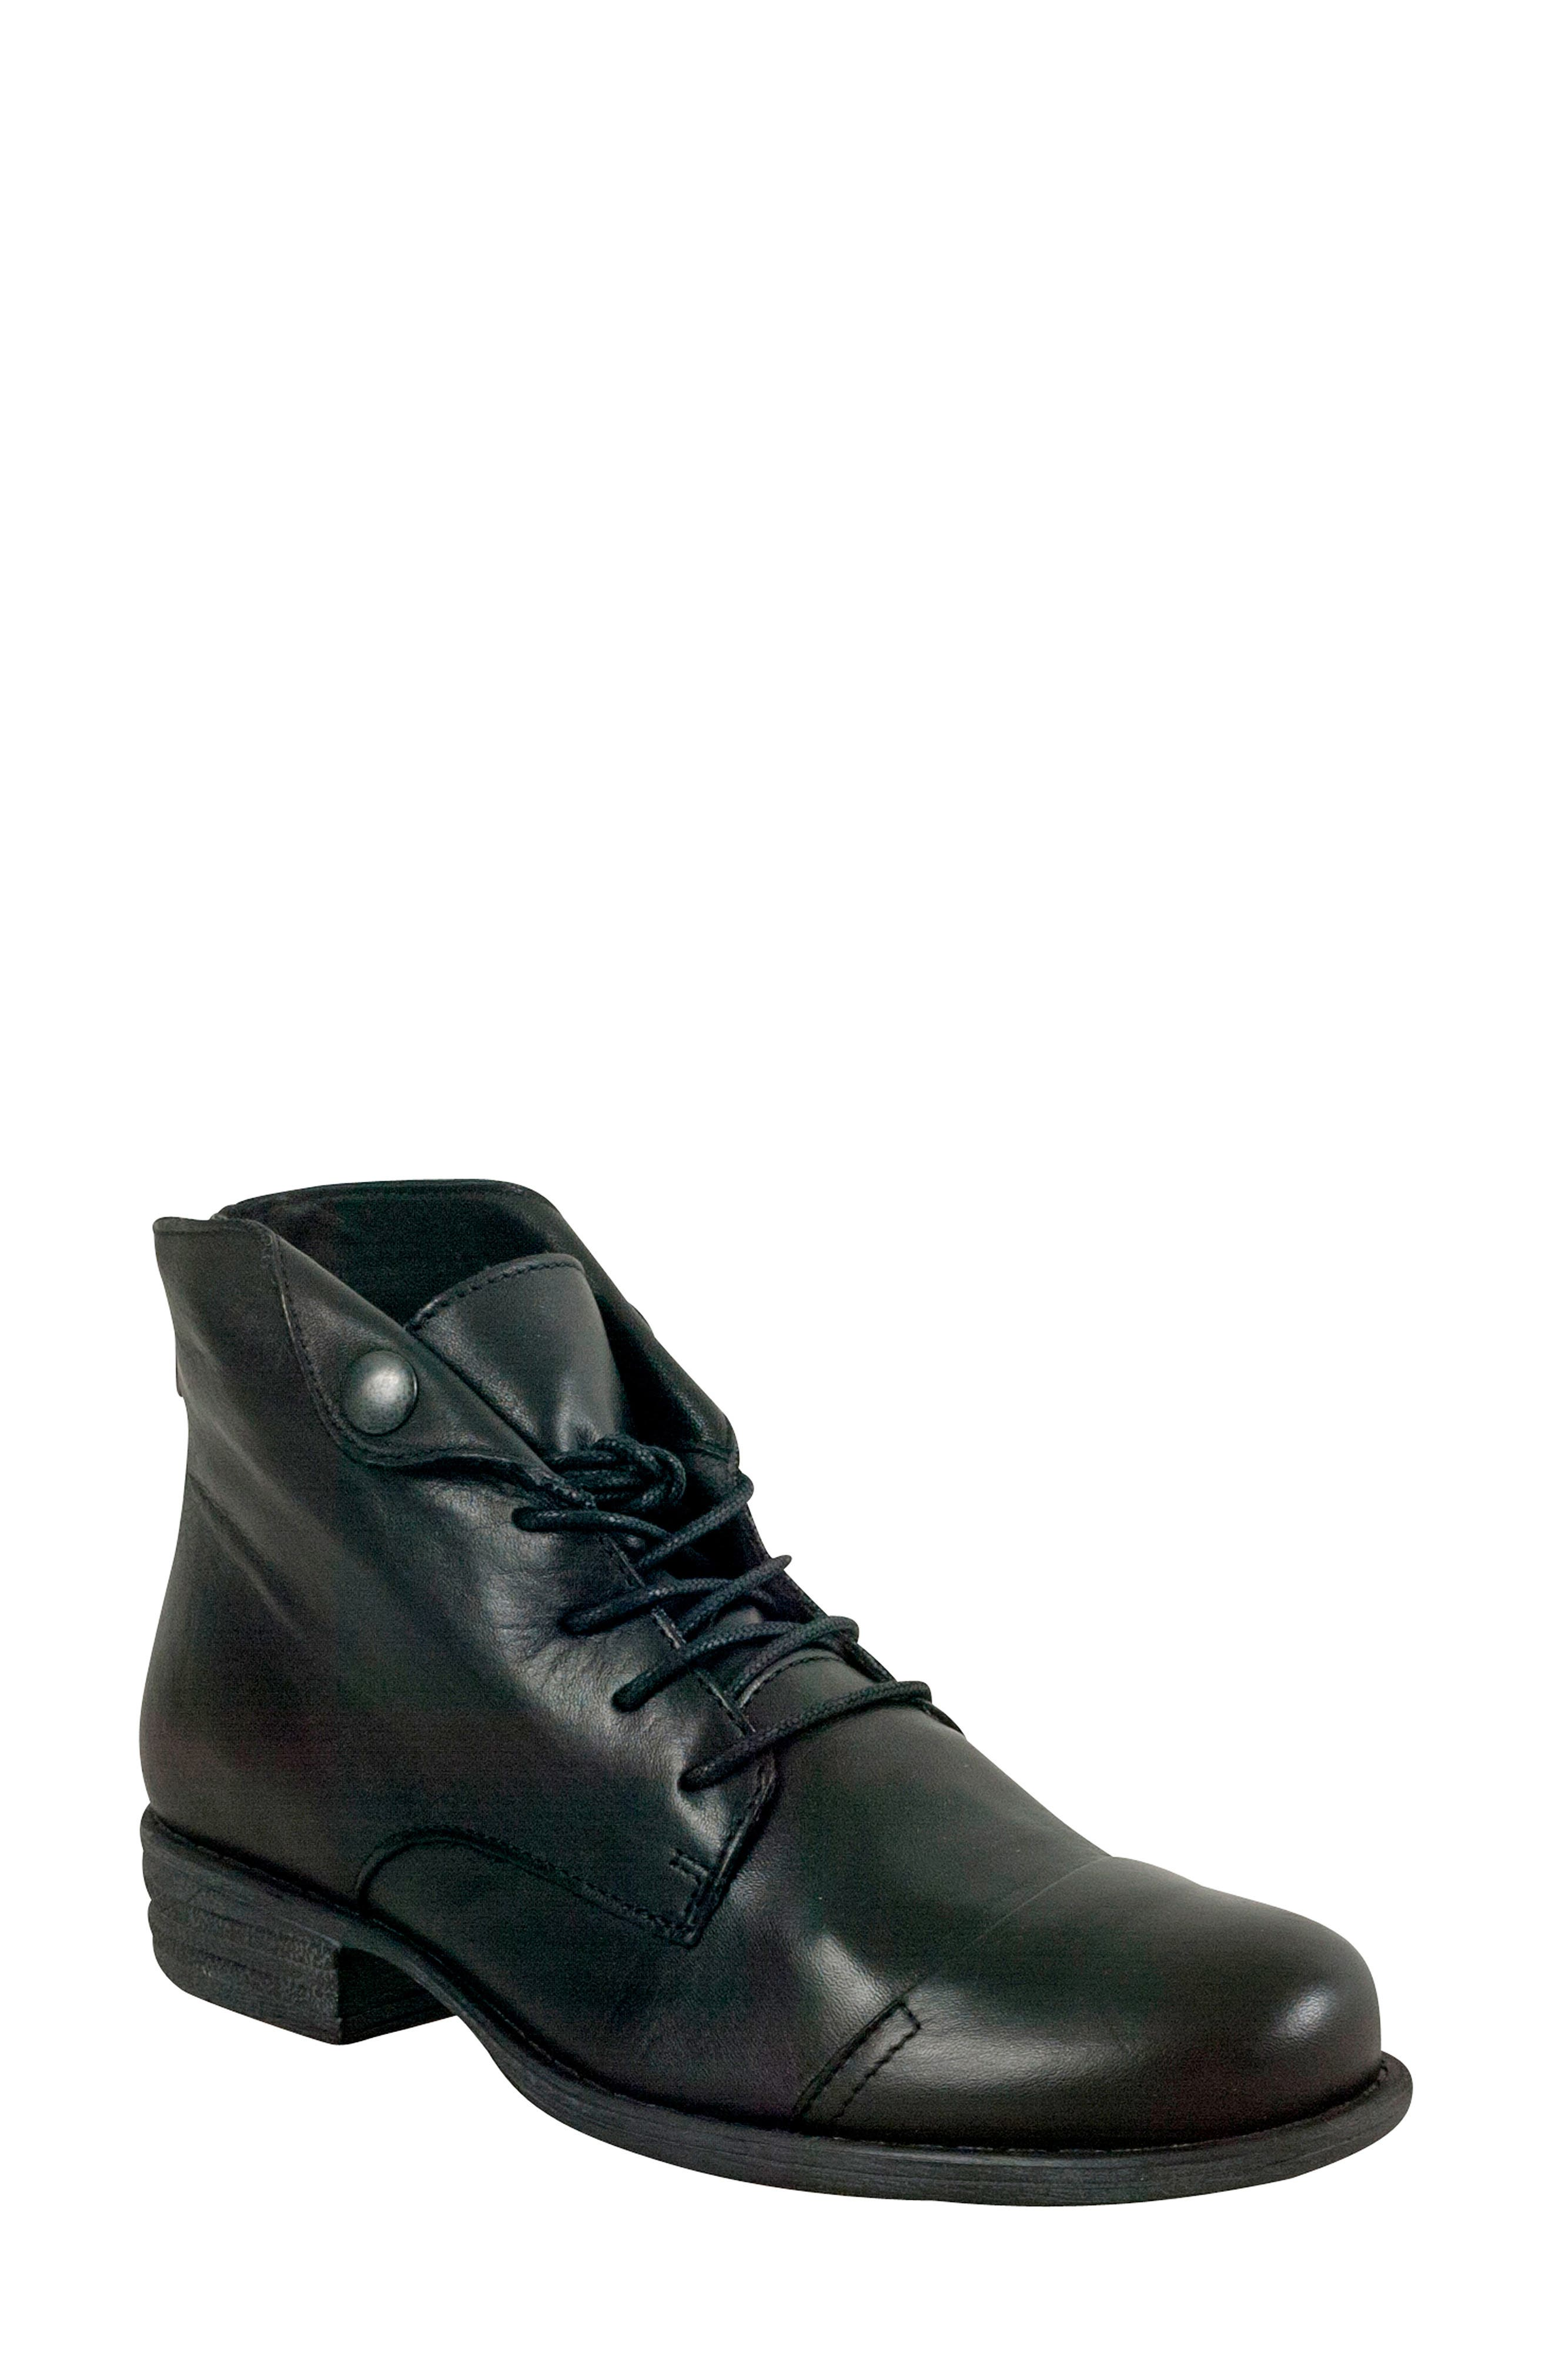 Lennox Lace-Up Bootie,                             Main thumbnail 1, color,                             001